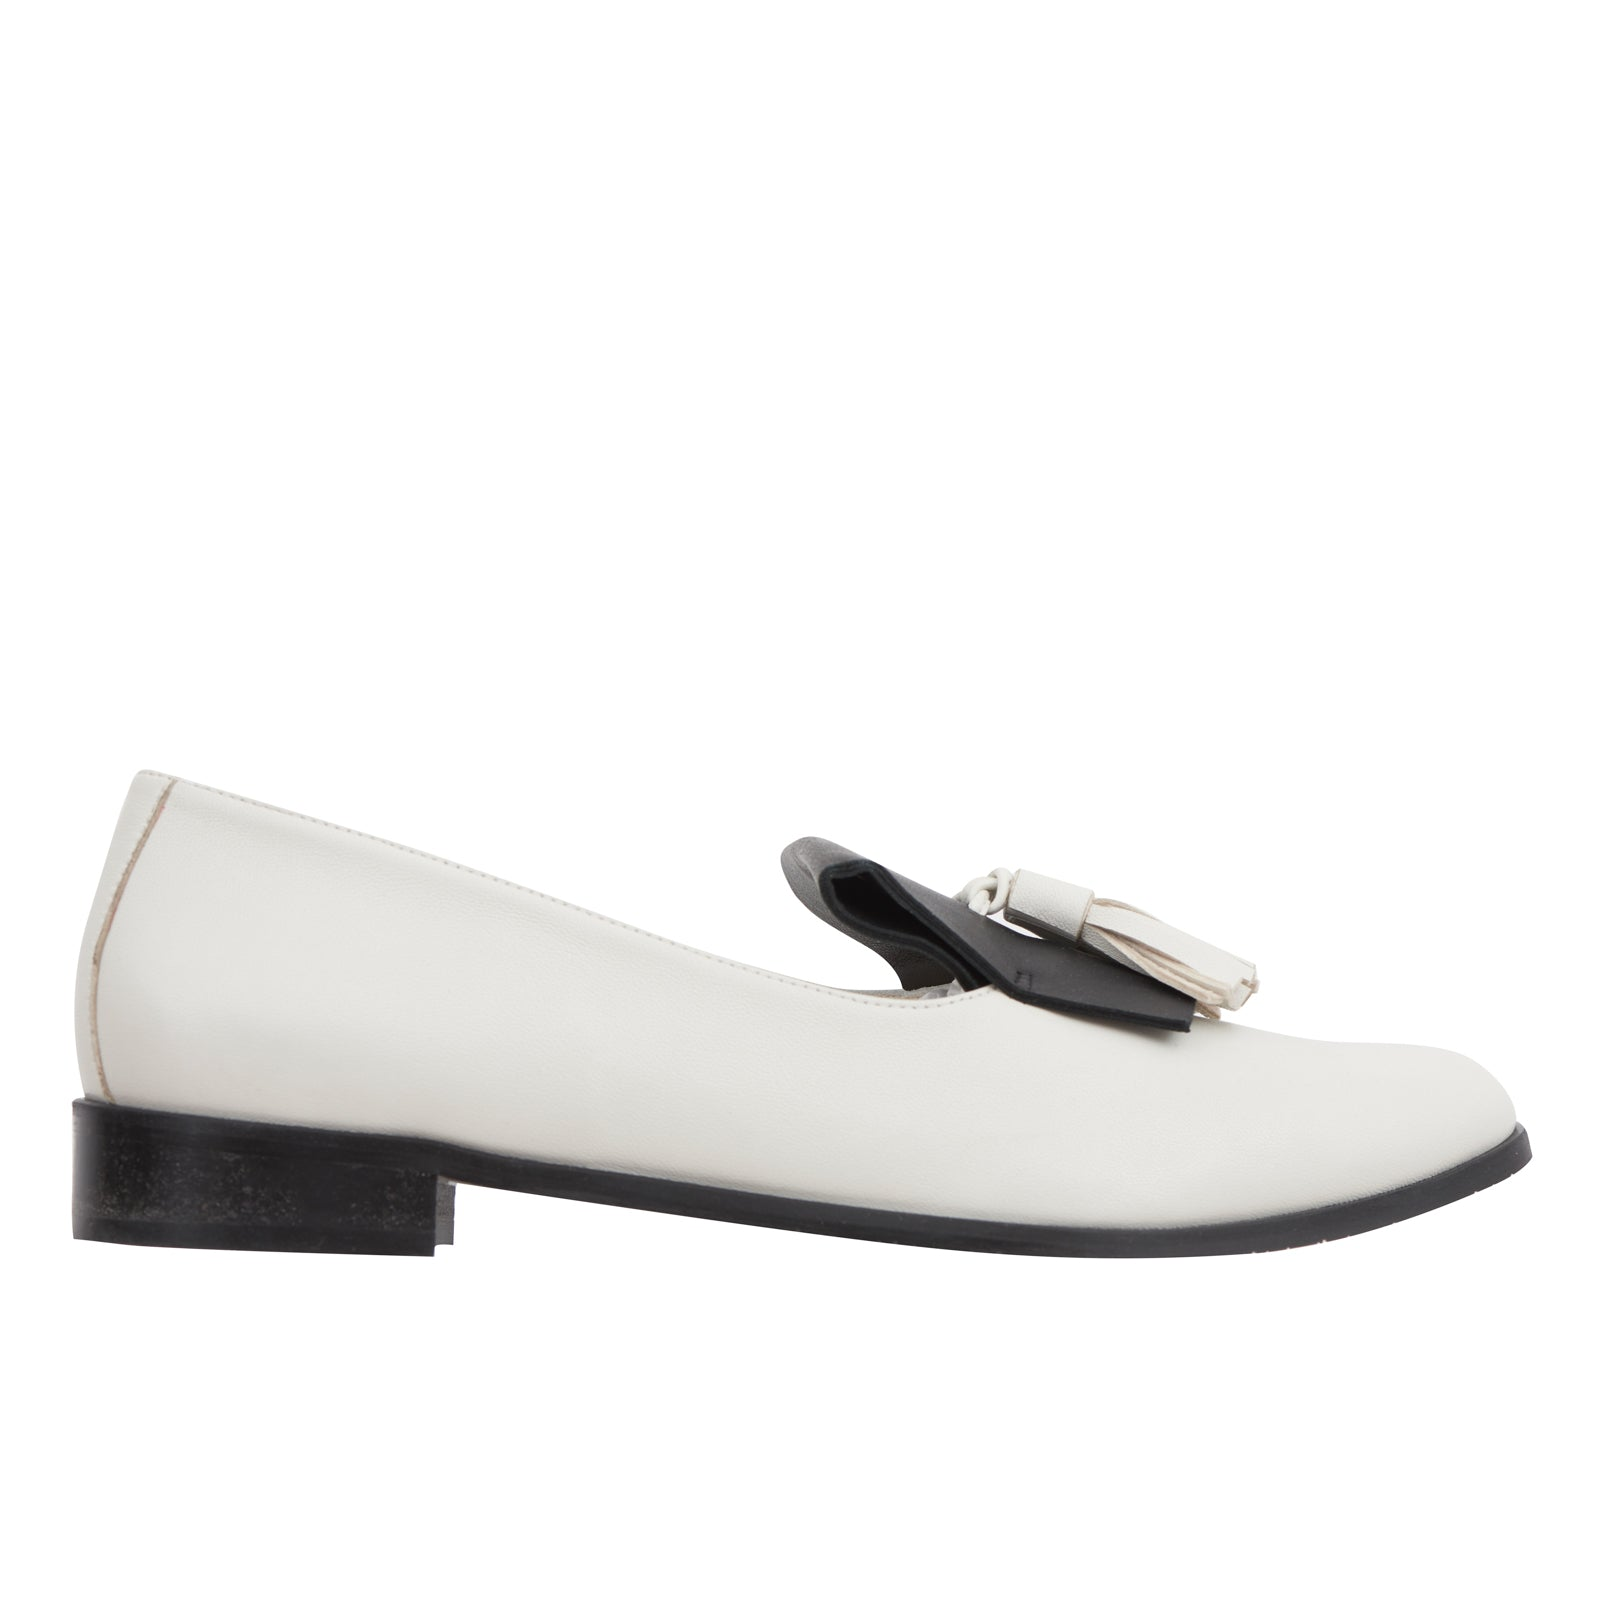 Ananda black and white leather Oxford